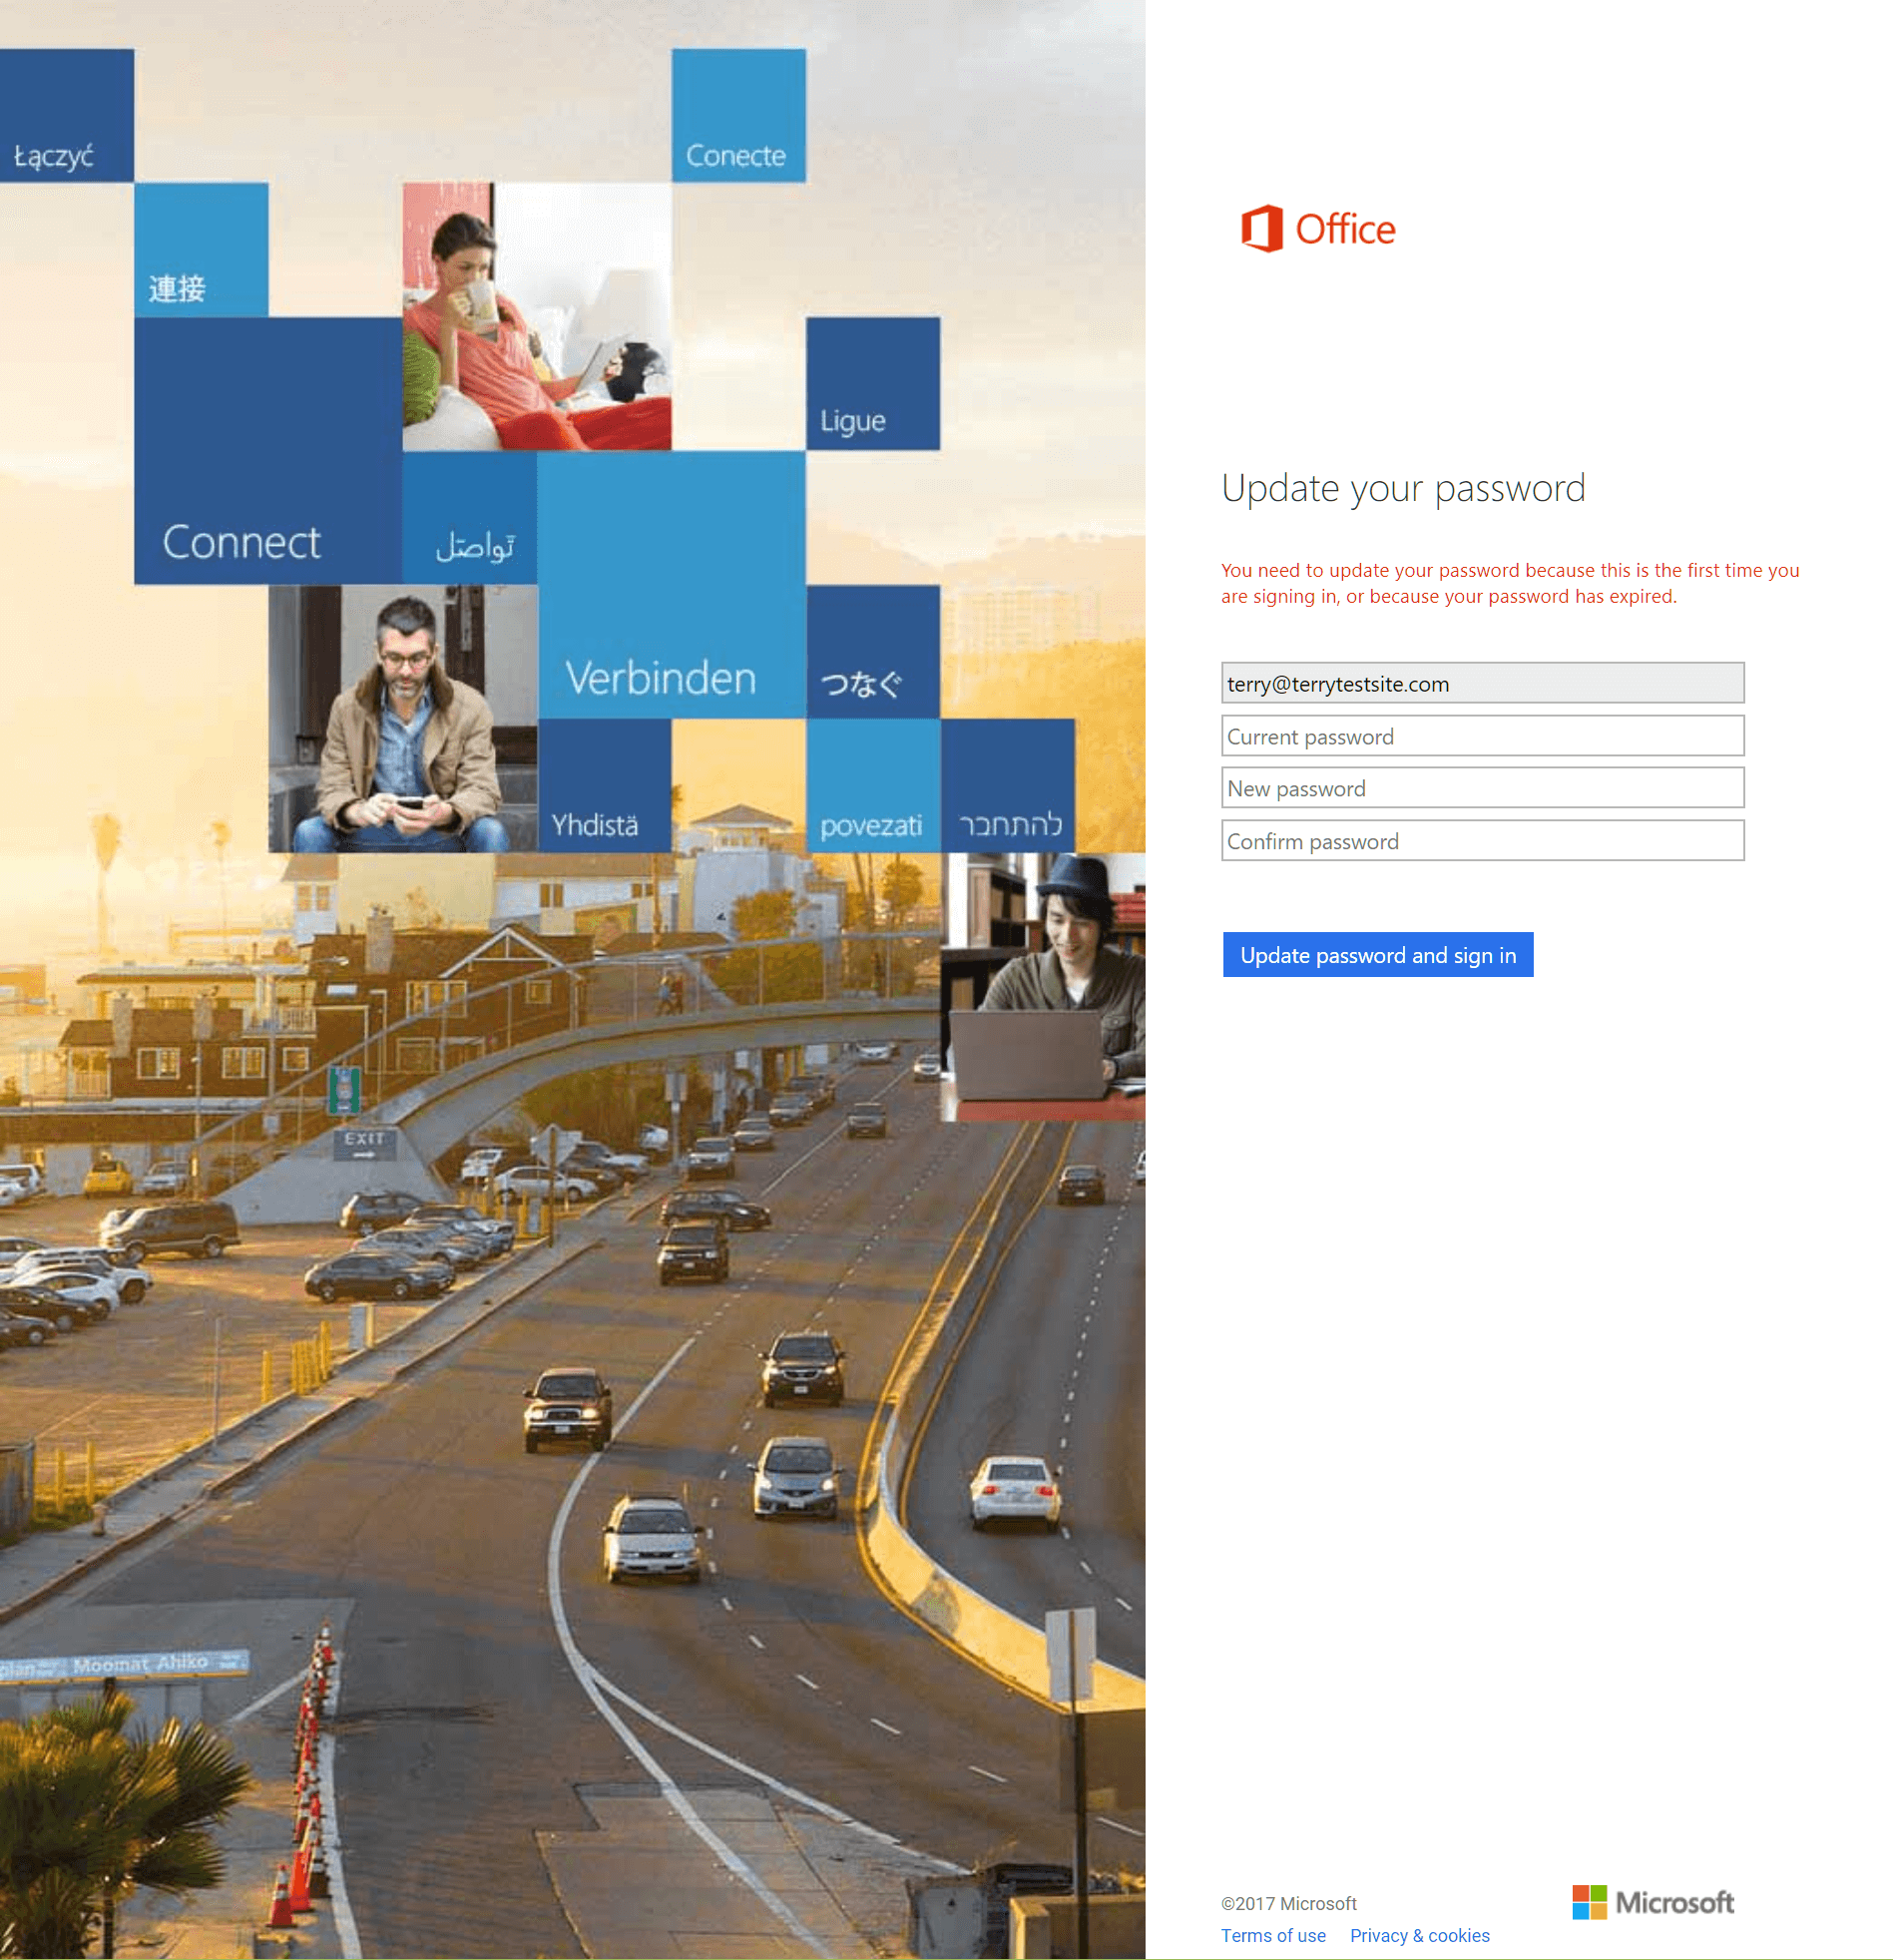 the office 365 portal will now open